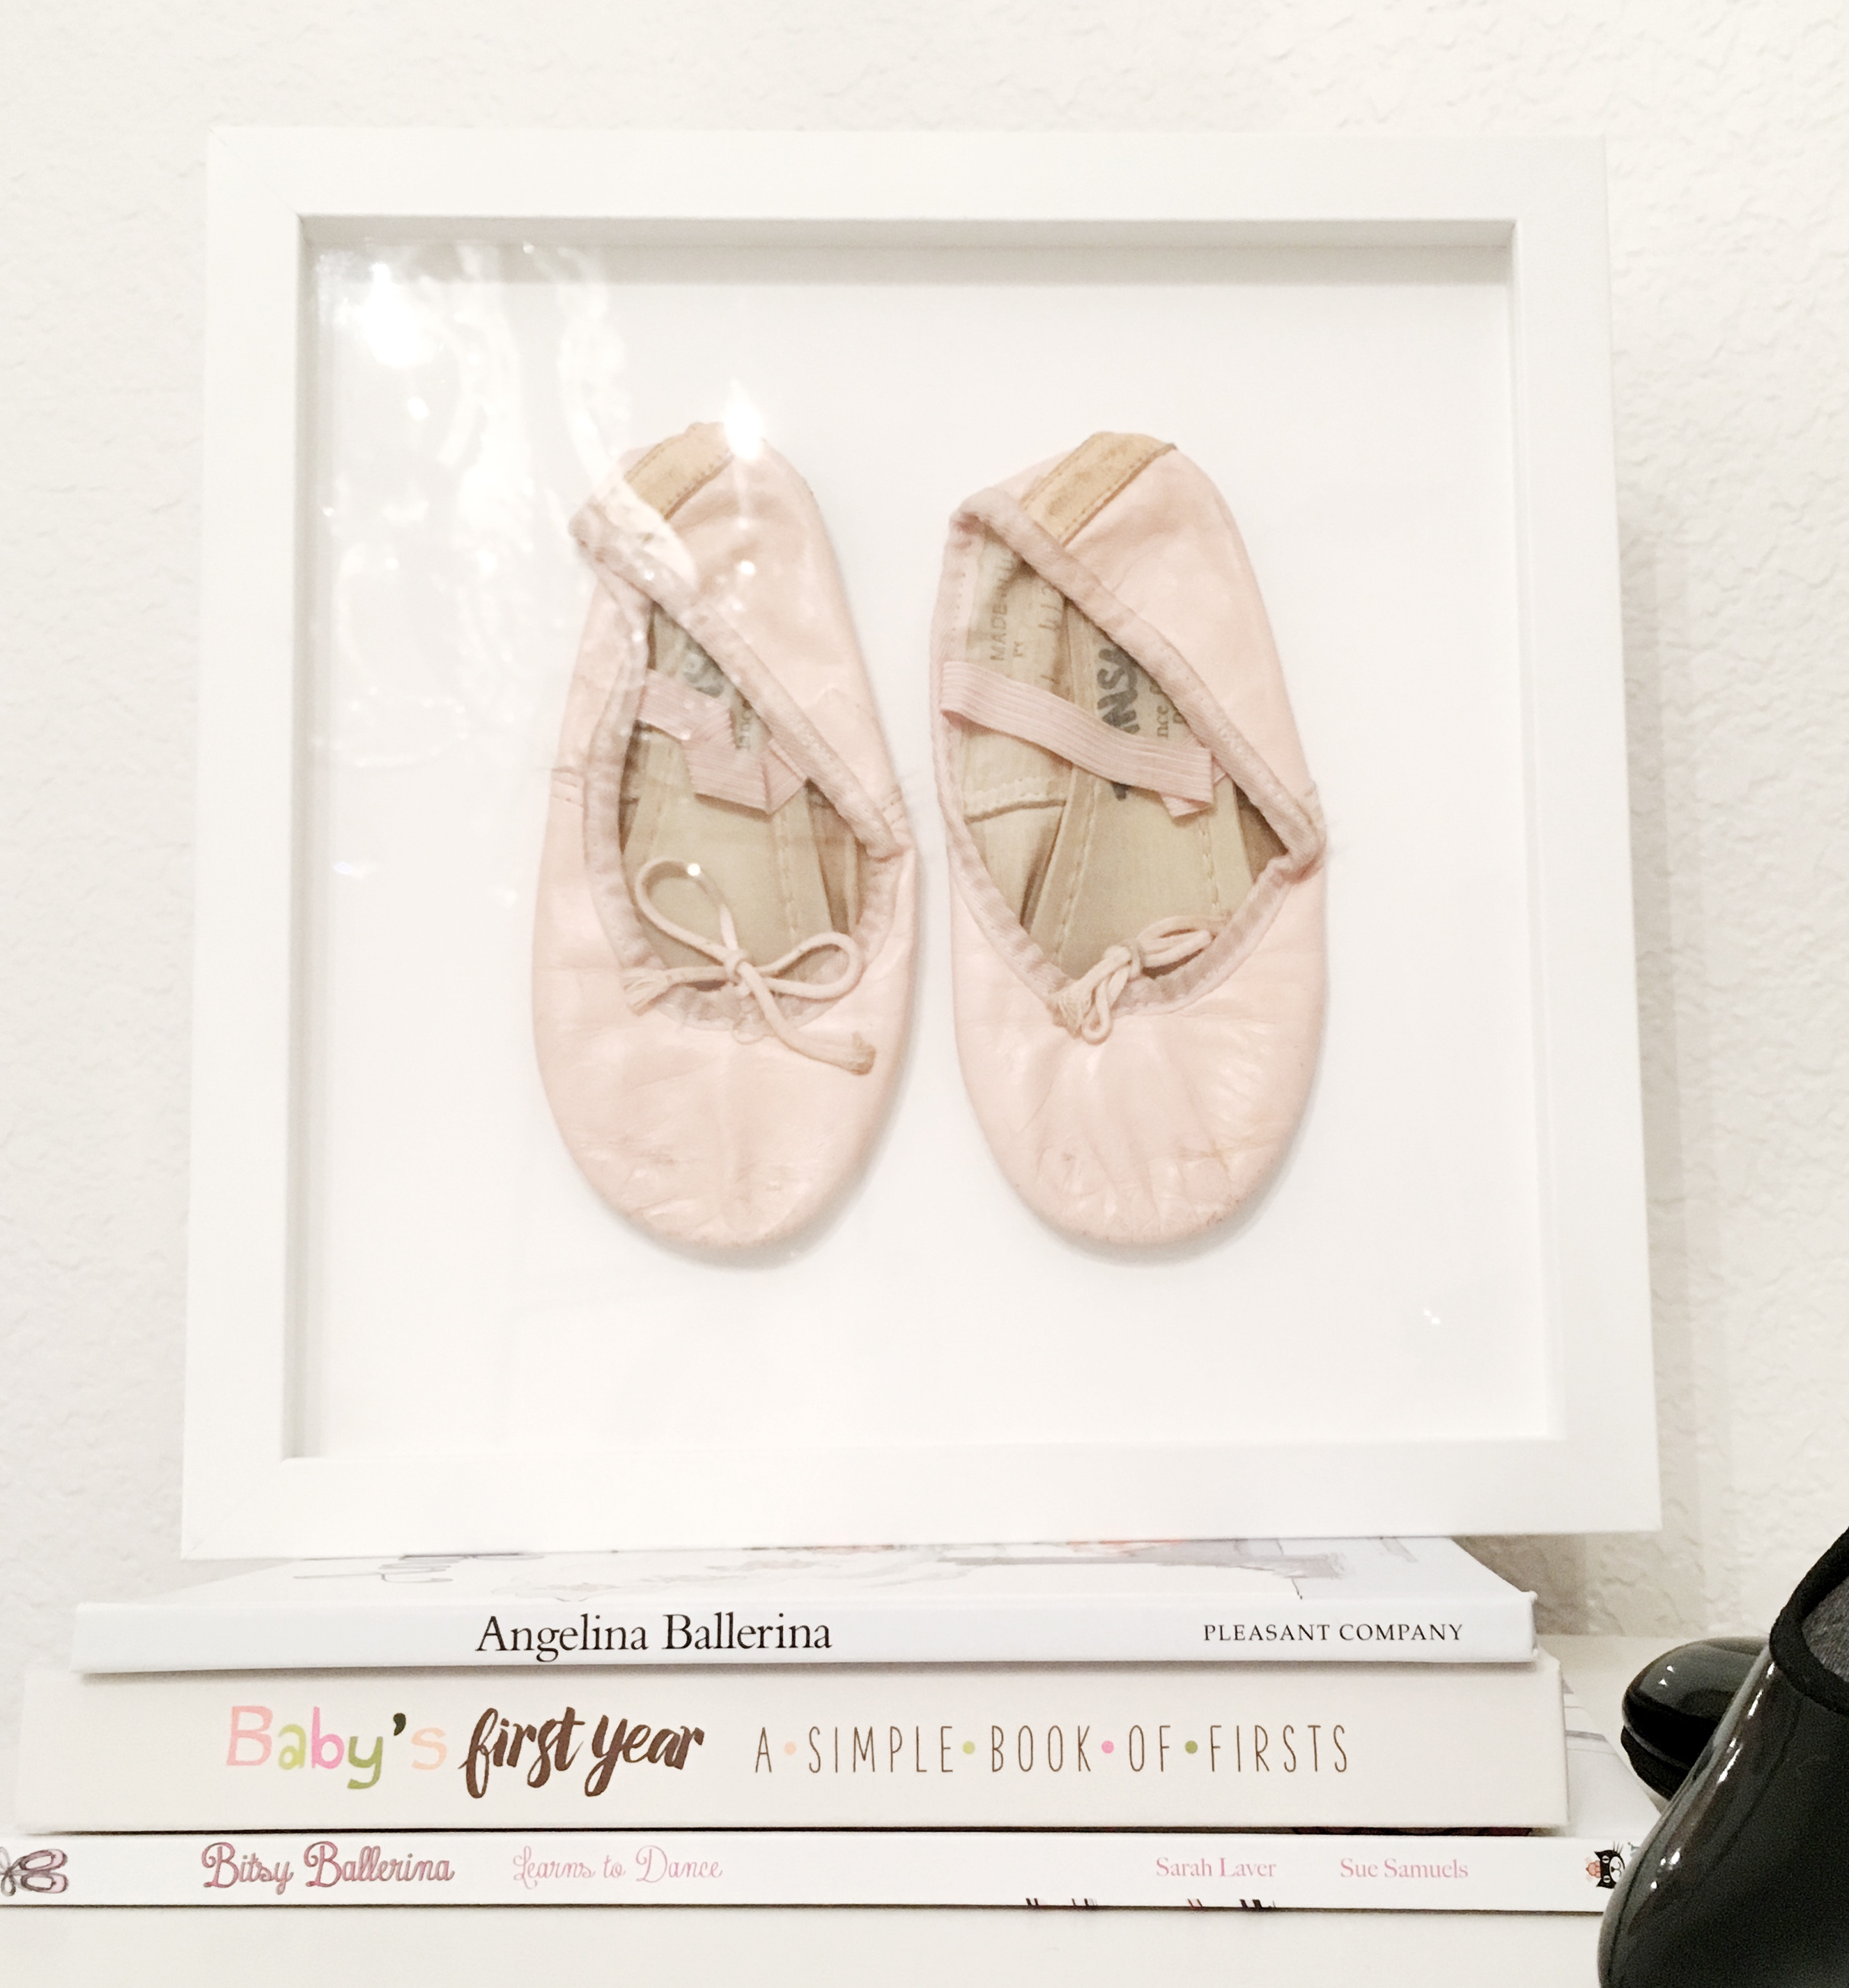 framed baby shoes, dancing shoes in shadowbox